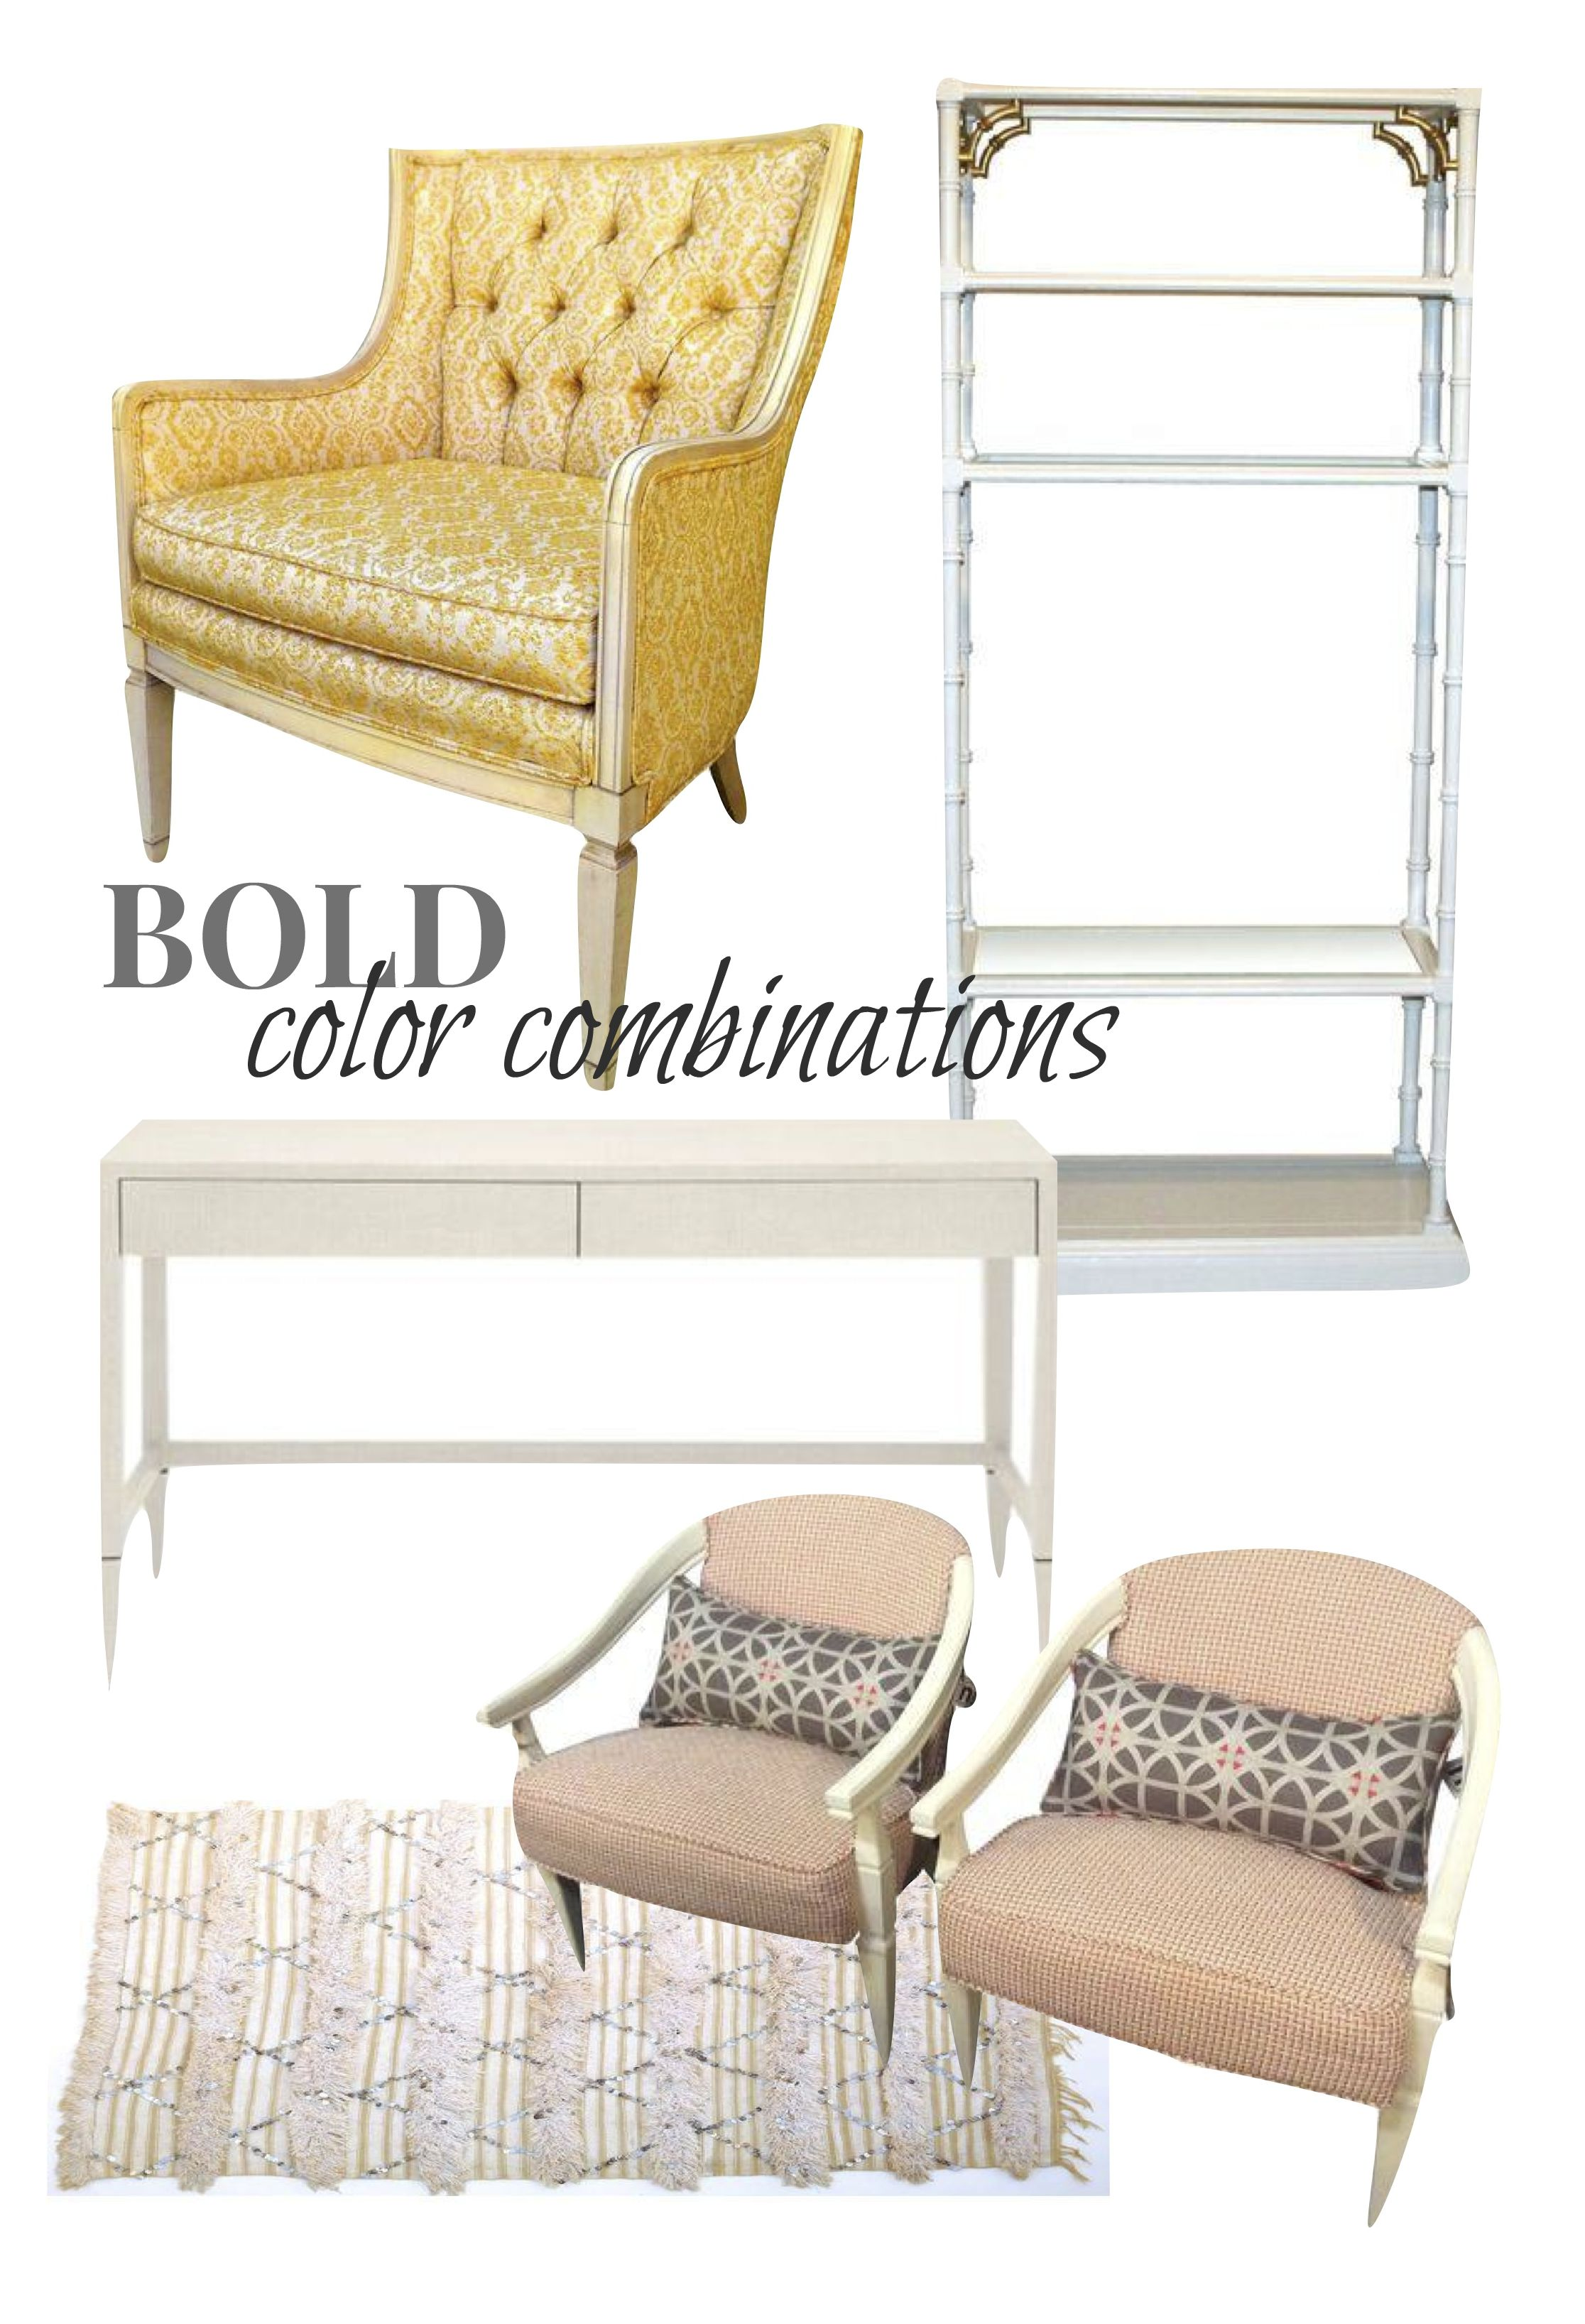 All Items Above Via Chairish |Vintage Butter Cream Brocade Arm Chair| Made  Goods Conrad Desk| Faux Bamboo Etagere| Vintage Moroccan Rug| Orange And  Ivory ...